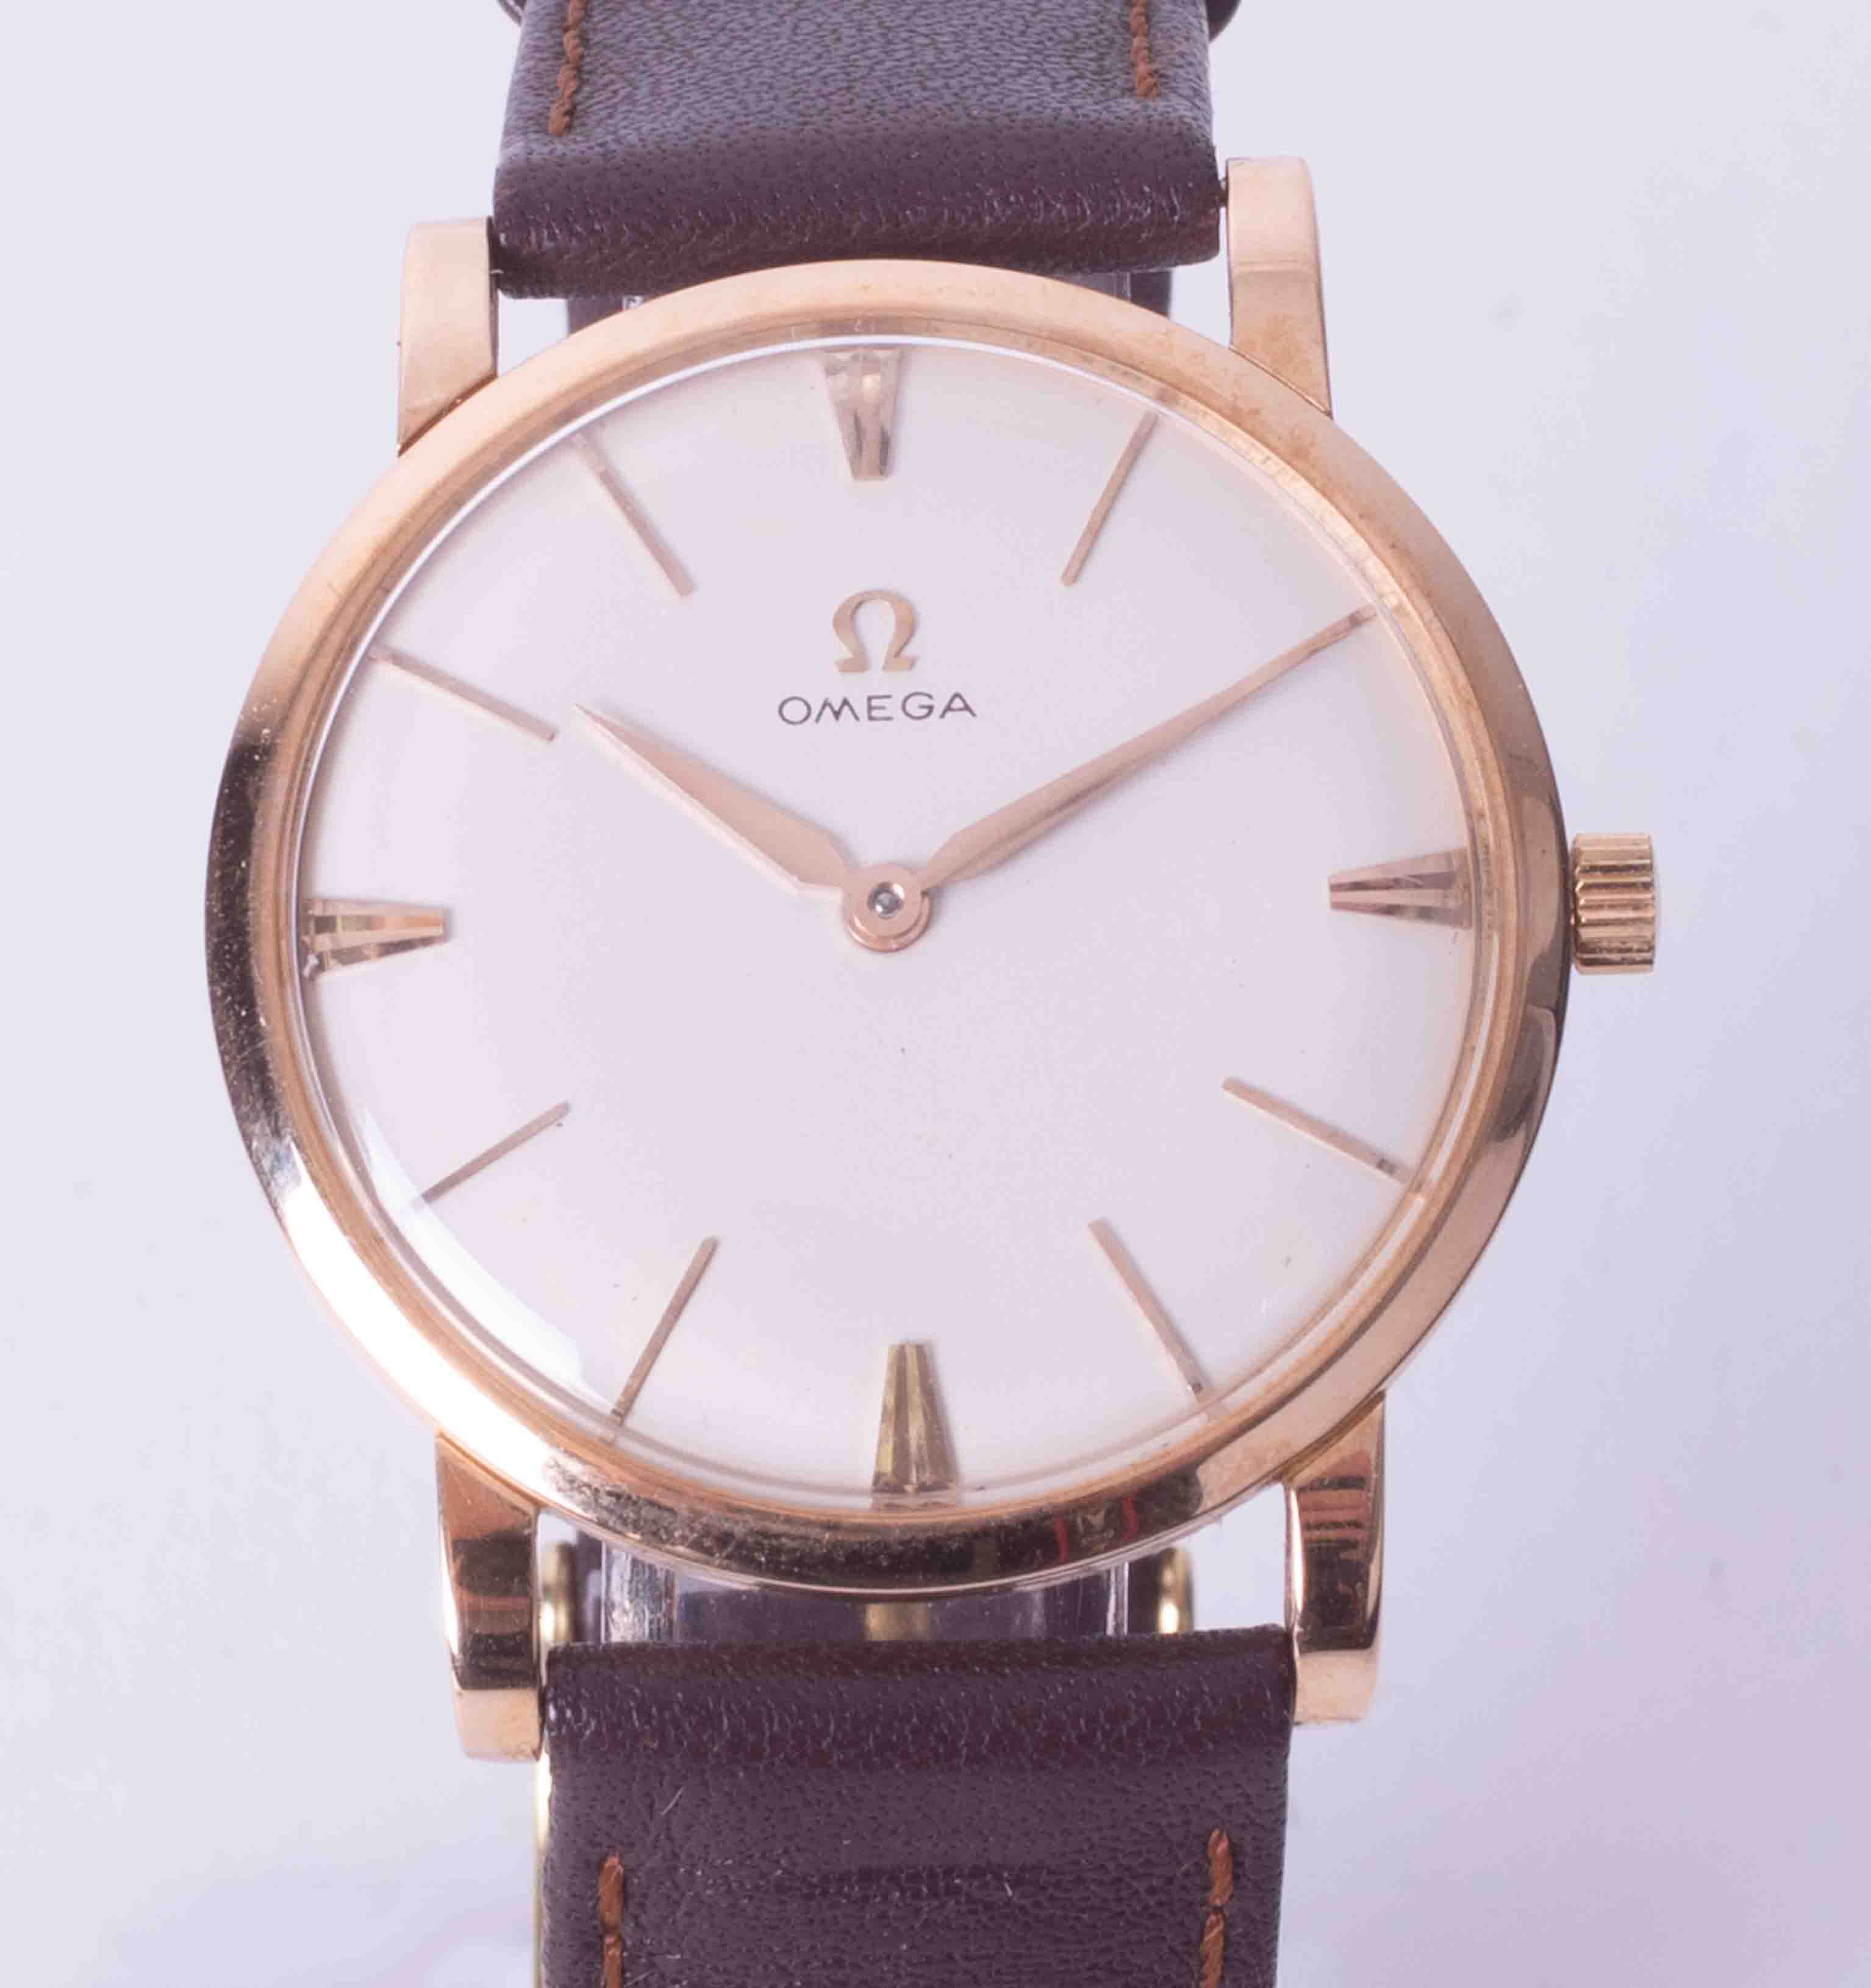 Omega, a gents gold plated manual wind 'Slim line' wristwatch circa late 1960's/70's full off